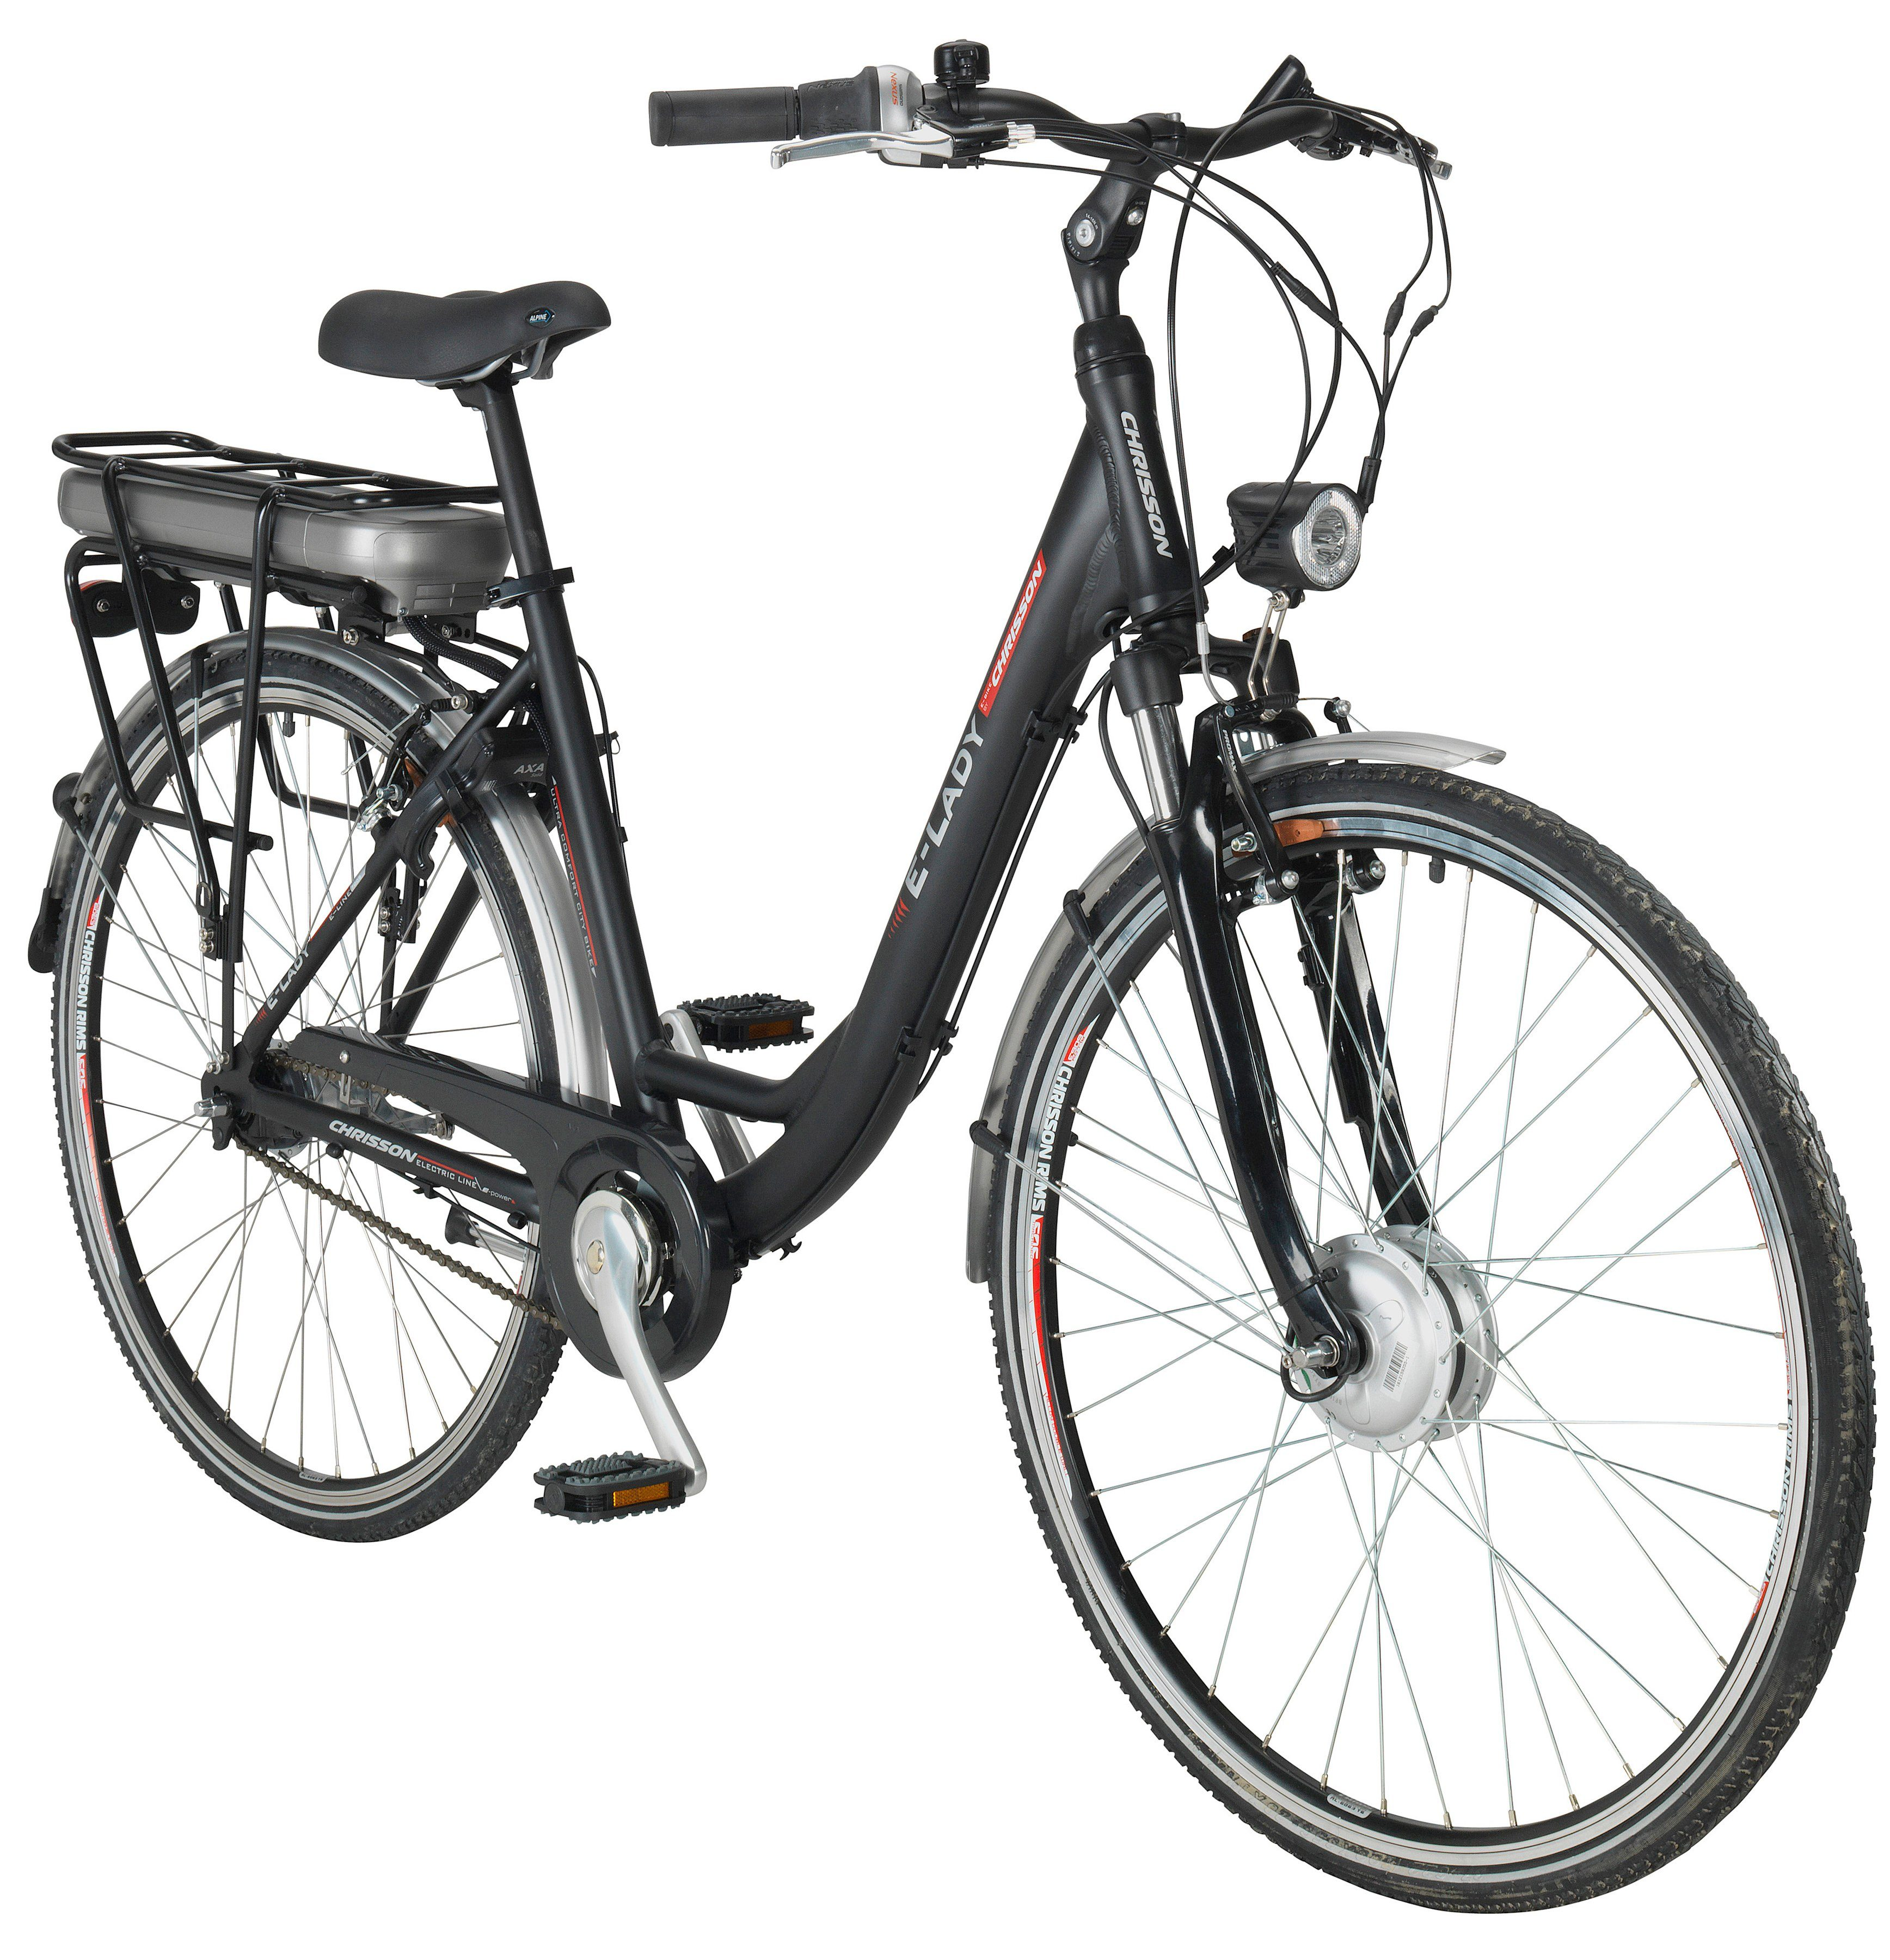 CHRISSON E-Bike City Damen »E-LADY «, 28 Zoll, 7 Gang, Frontmotor, 482 Wh